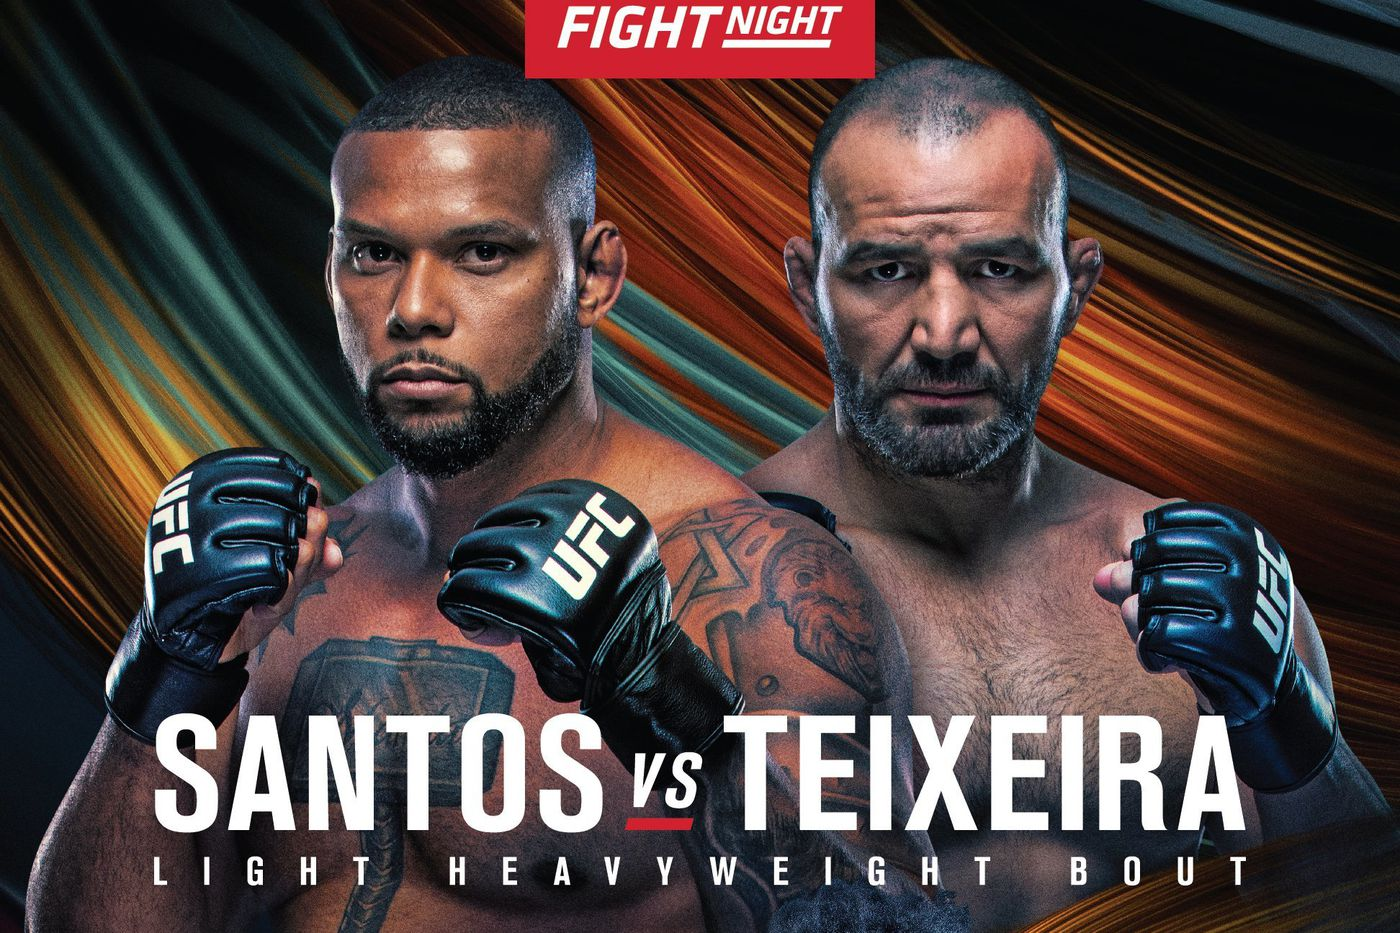 Watch UFC Fight Night 182: Santos Vs. Teixeira 11/7/20